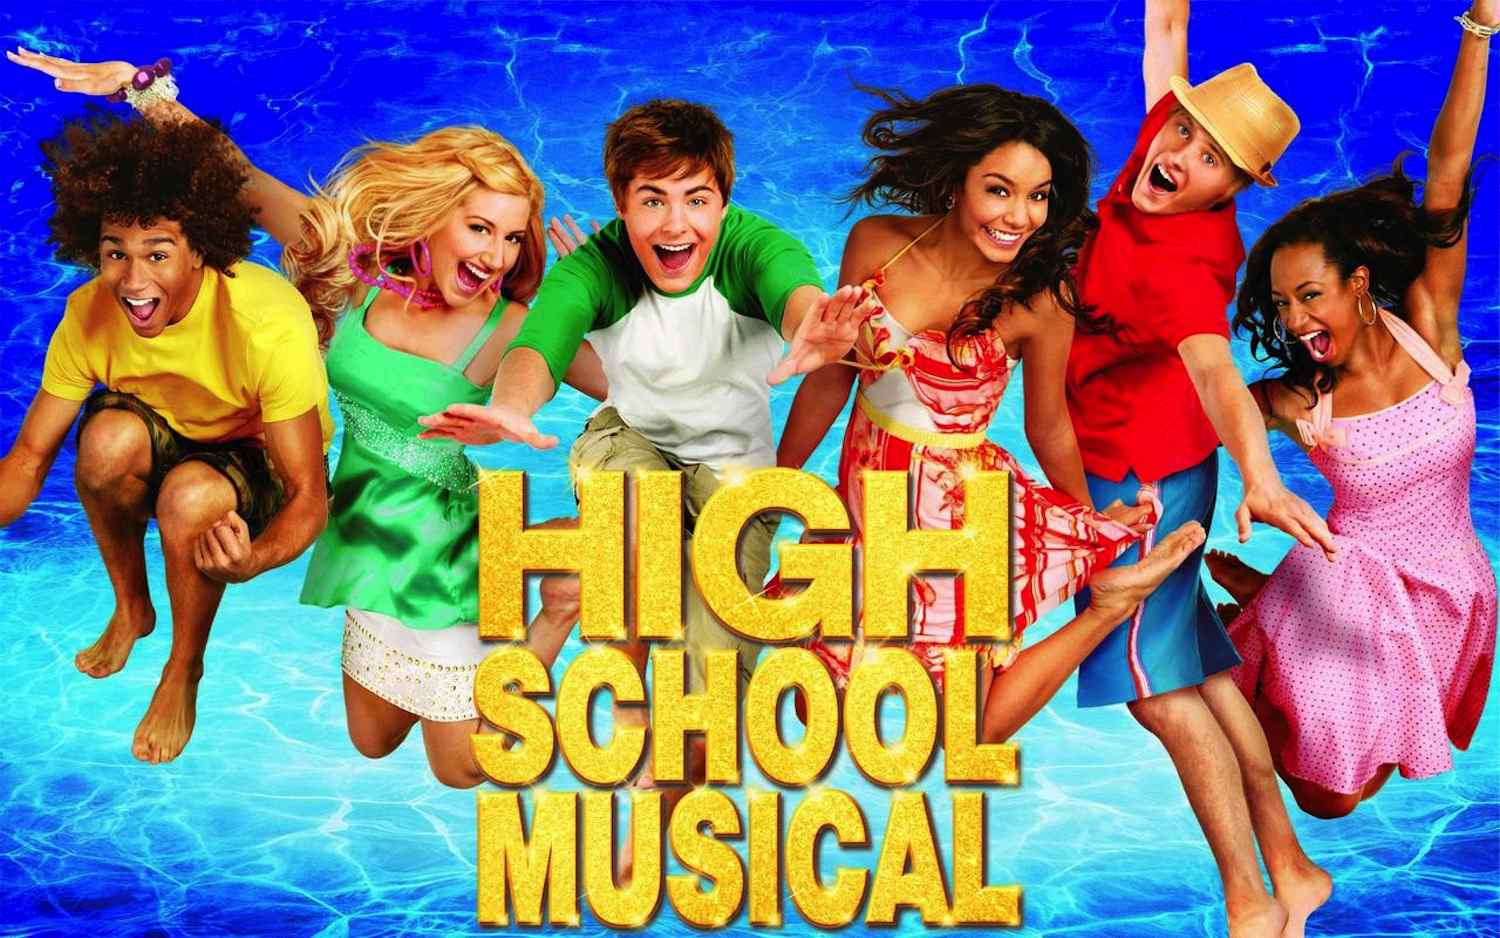 Top 10 Songs From The High School Musical Series